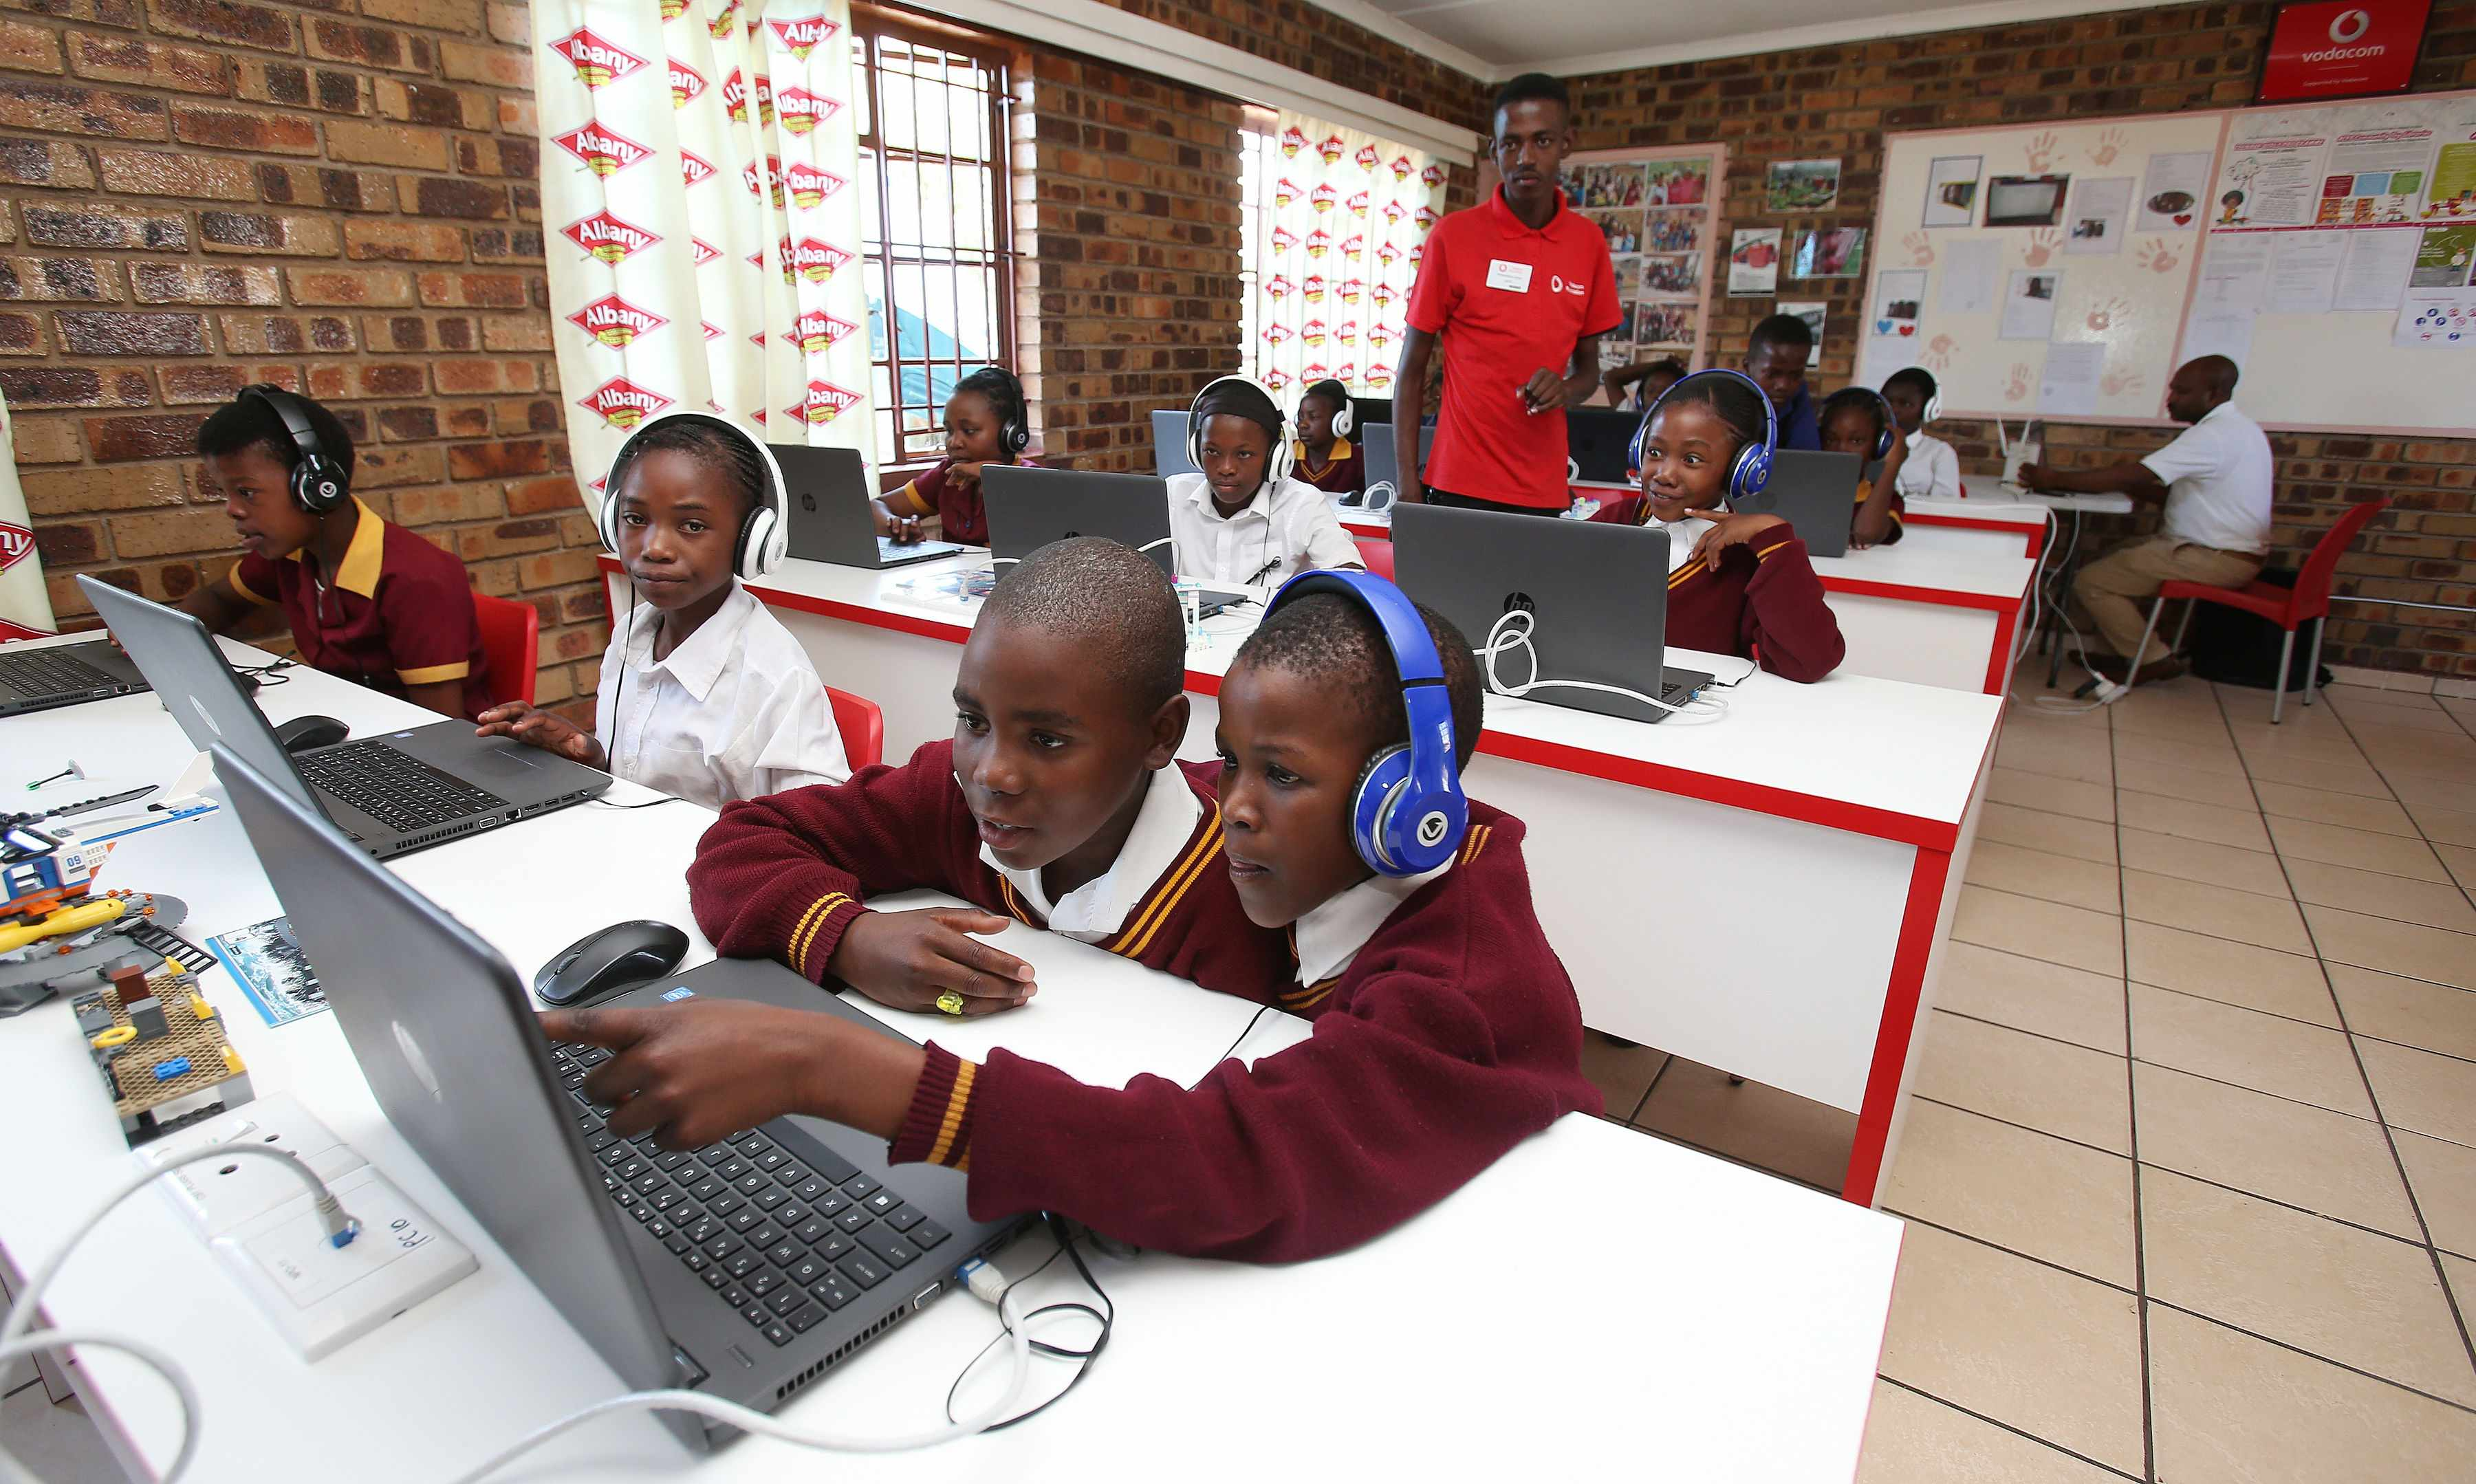 Vodacom's eSchool platform reached over 1m users during the pandemic